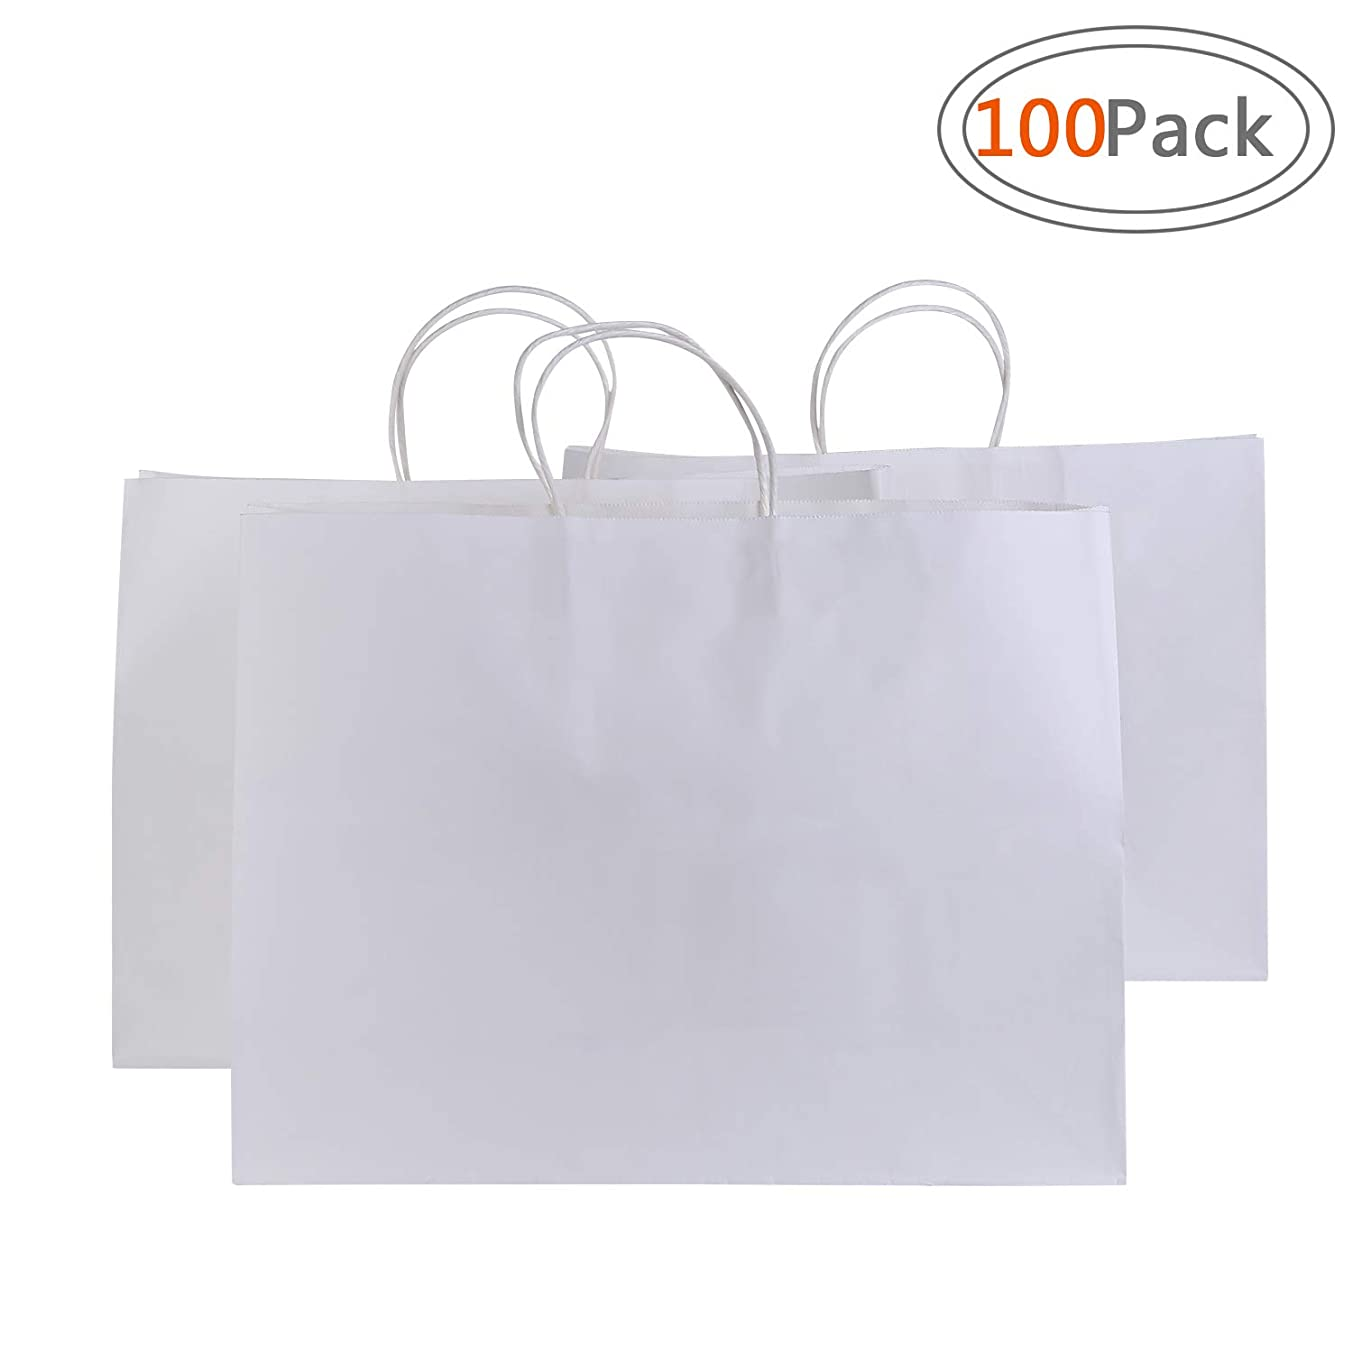 Road 16x6x12 Inches 100 Pcs Large Kraft White Paper Bags with Handles, Shopping, Grocery, Mechandise, Party Bags